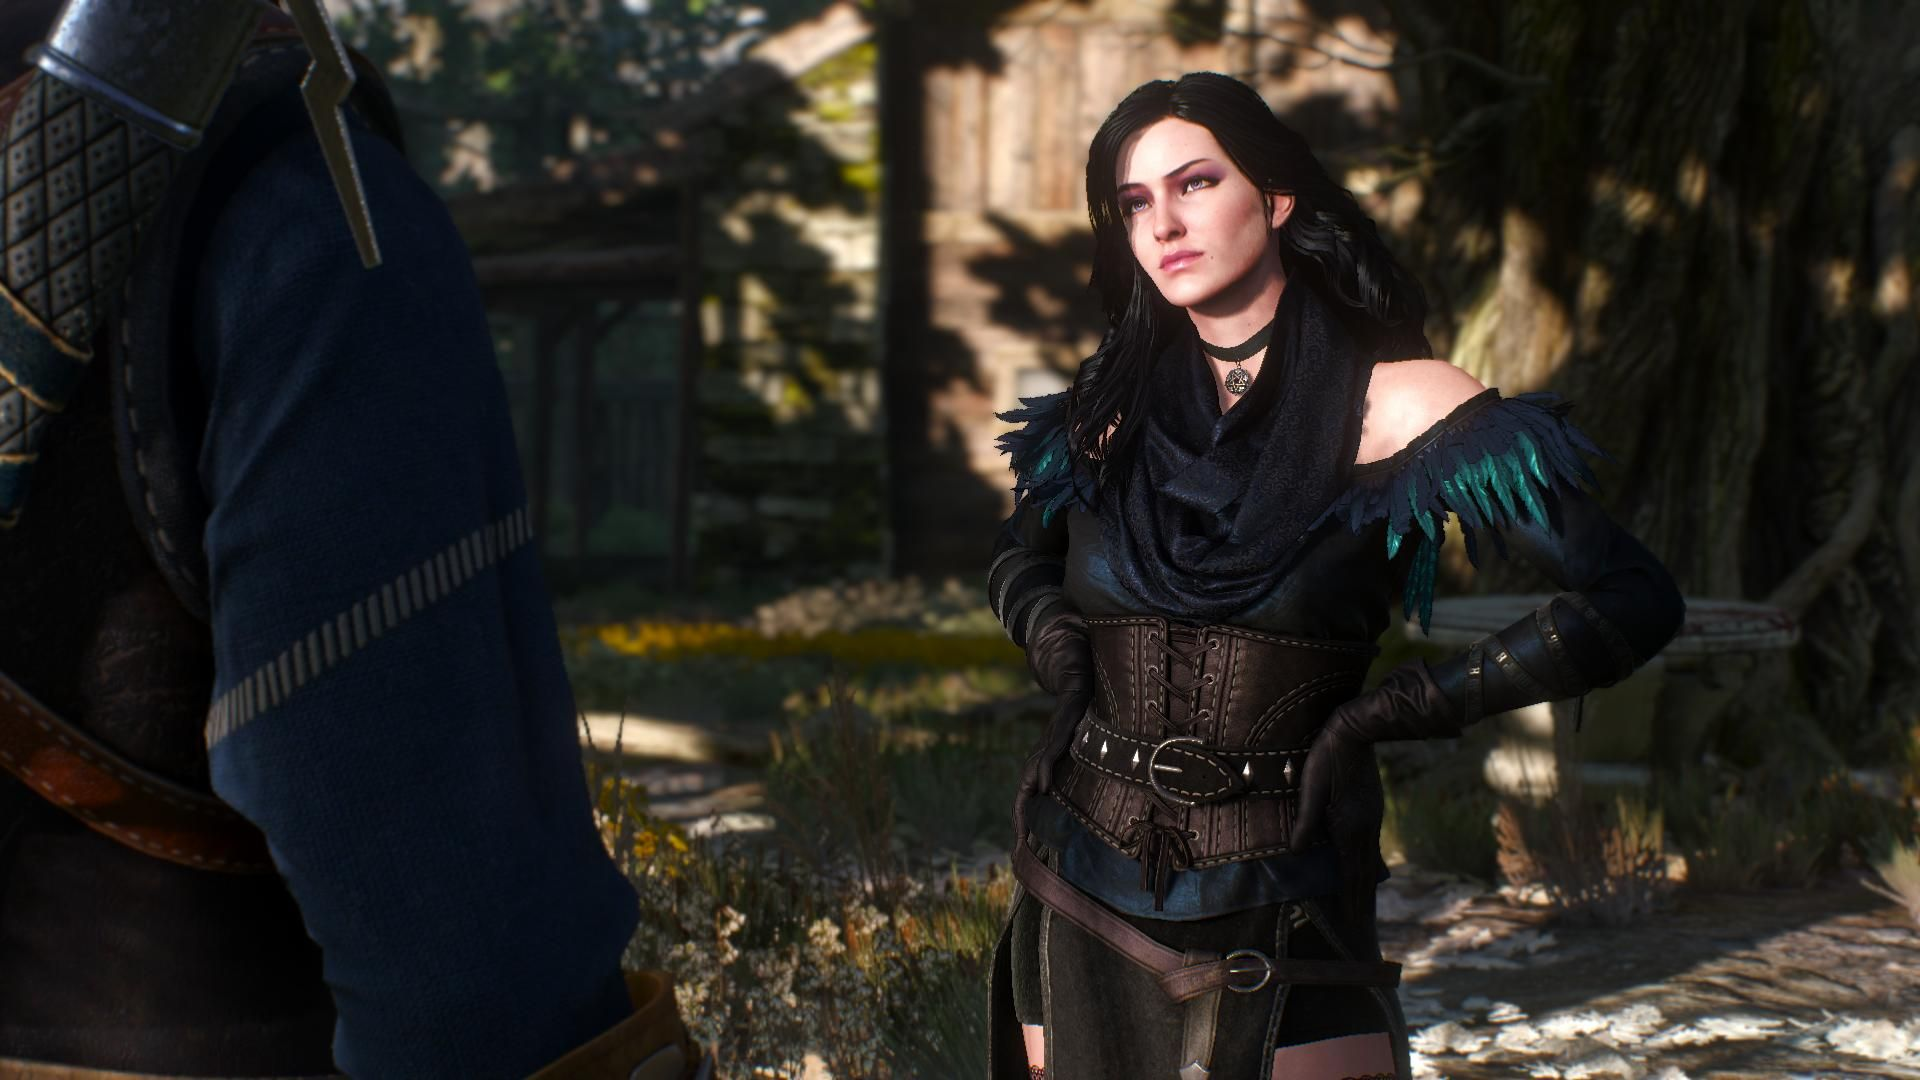 Witcher Yennefer, Pic